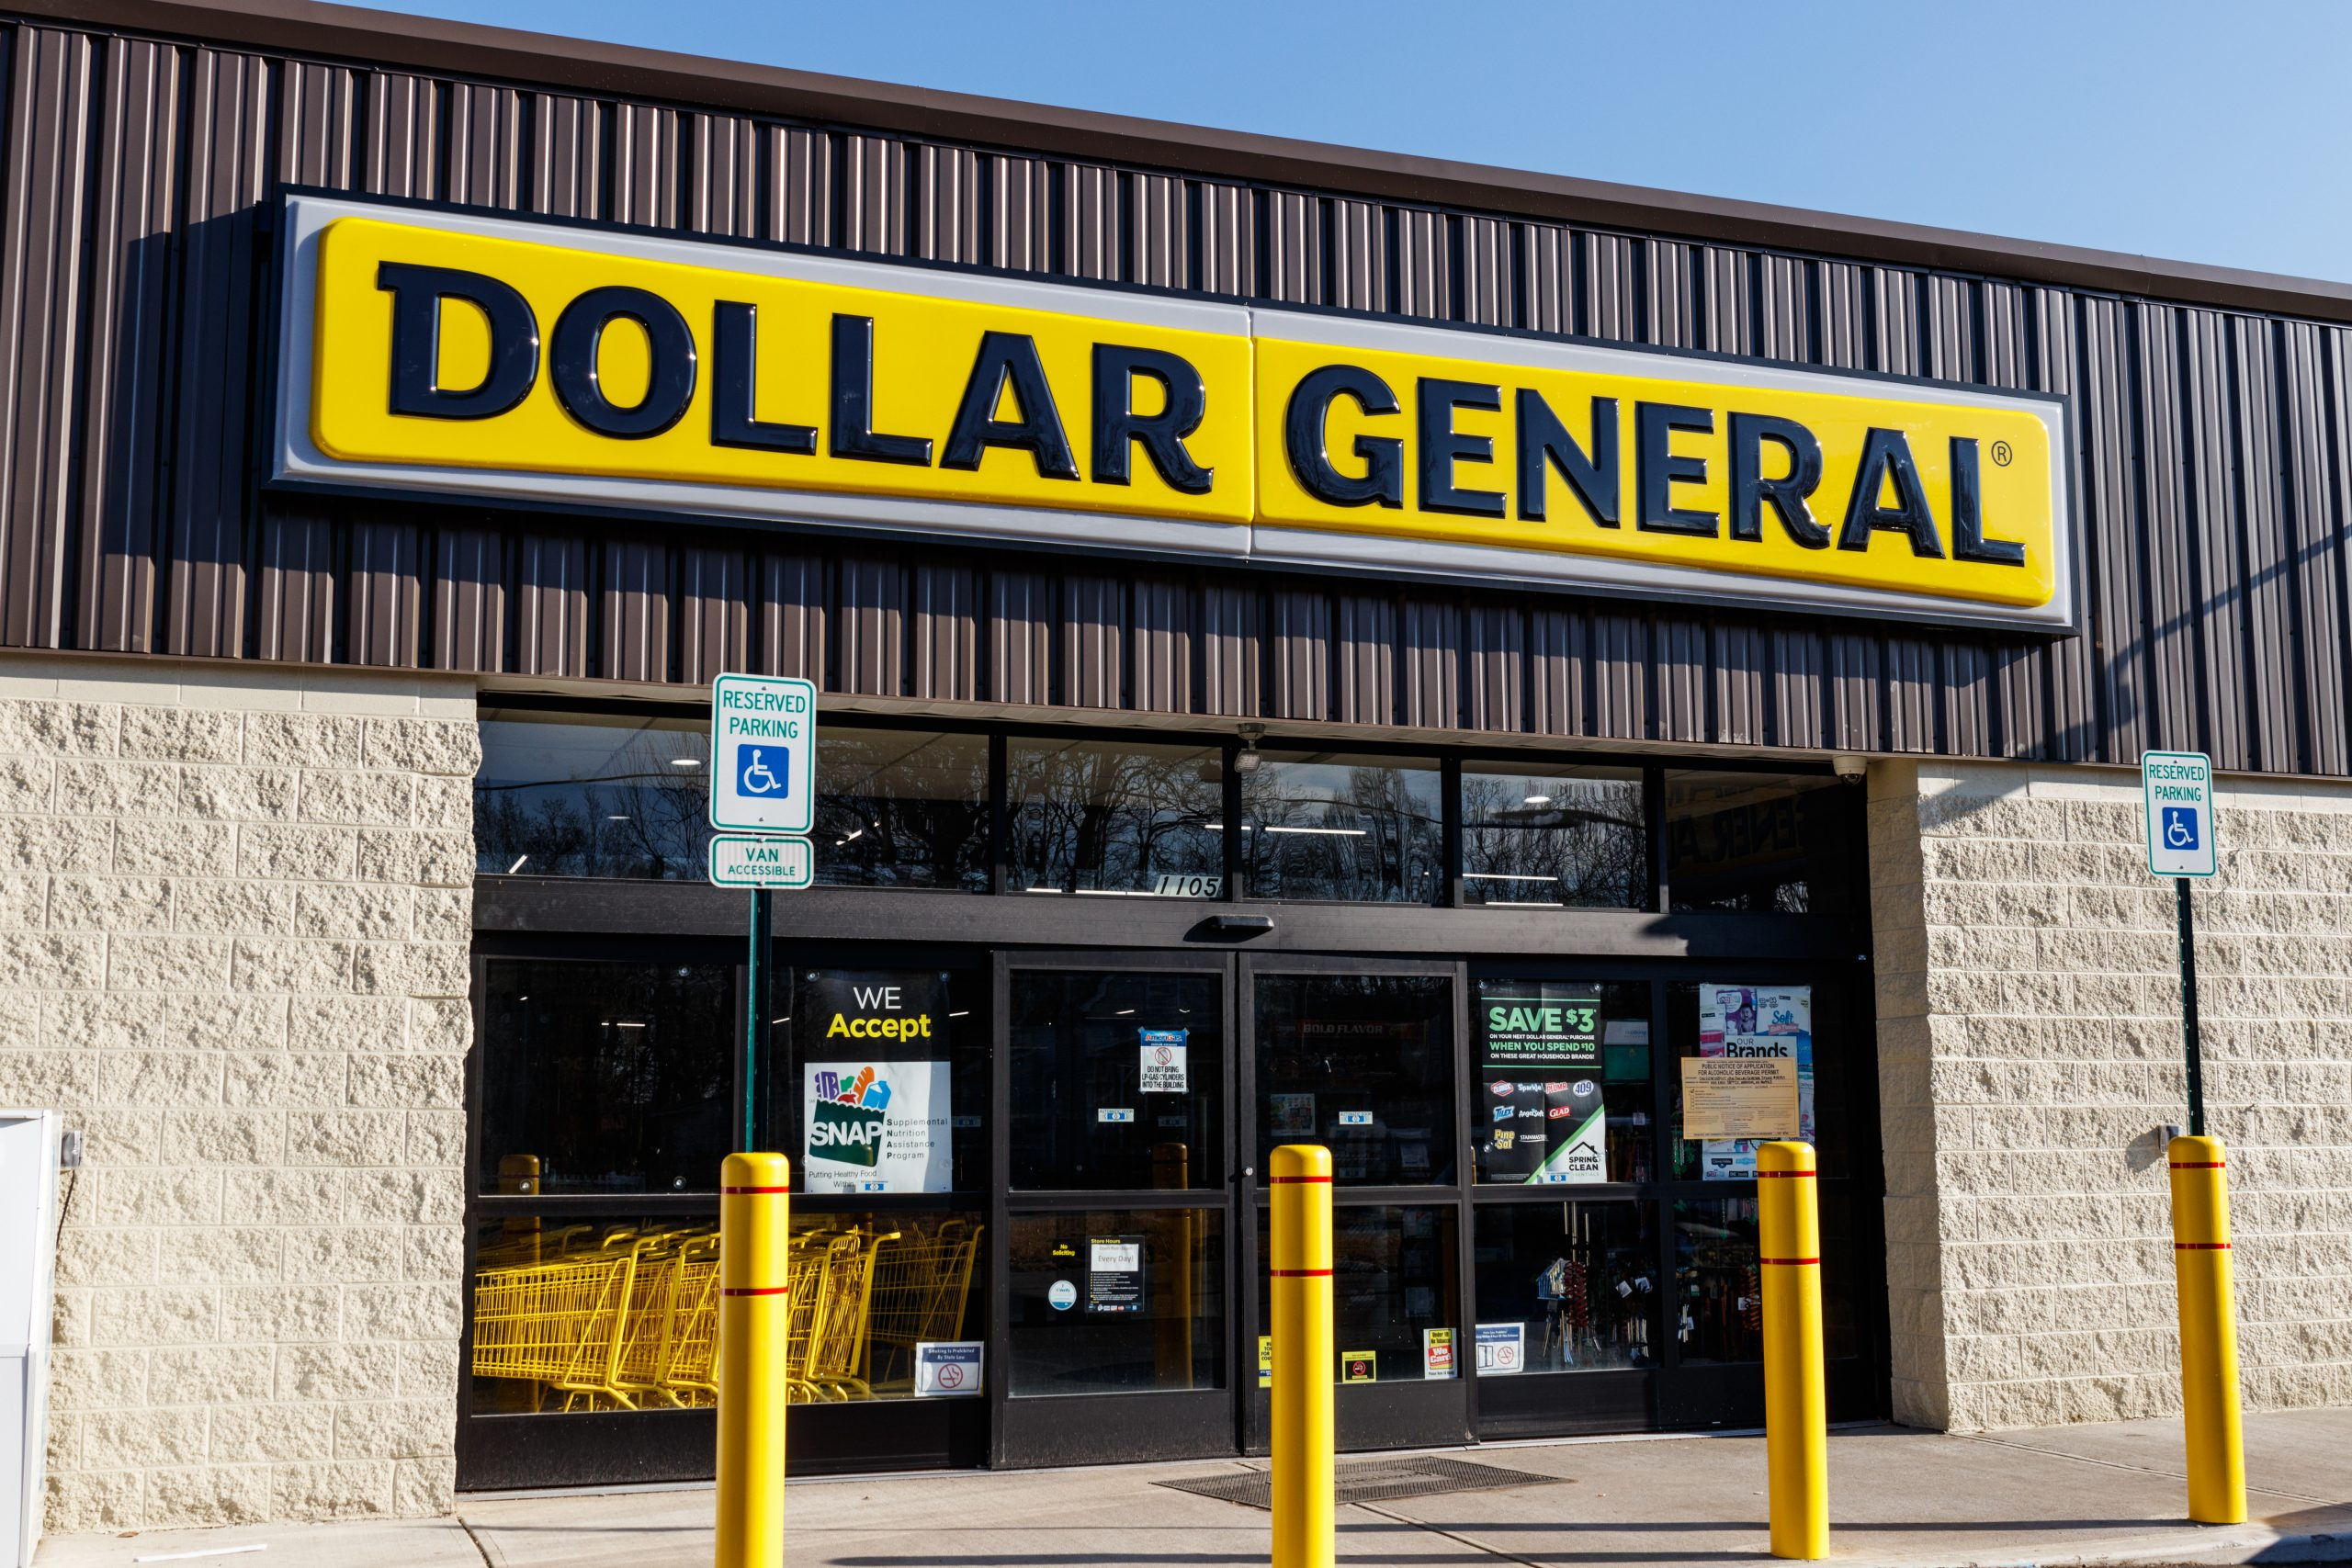 Dollar General Plans Push into Health Care